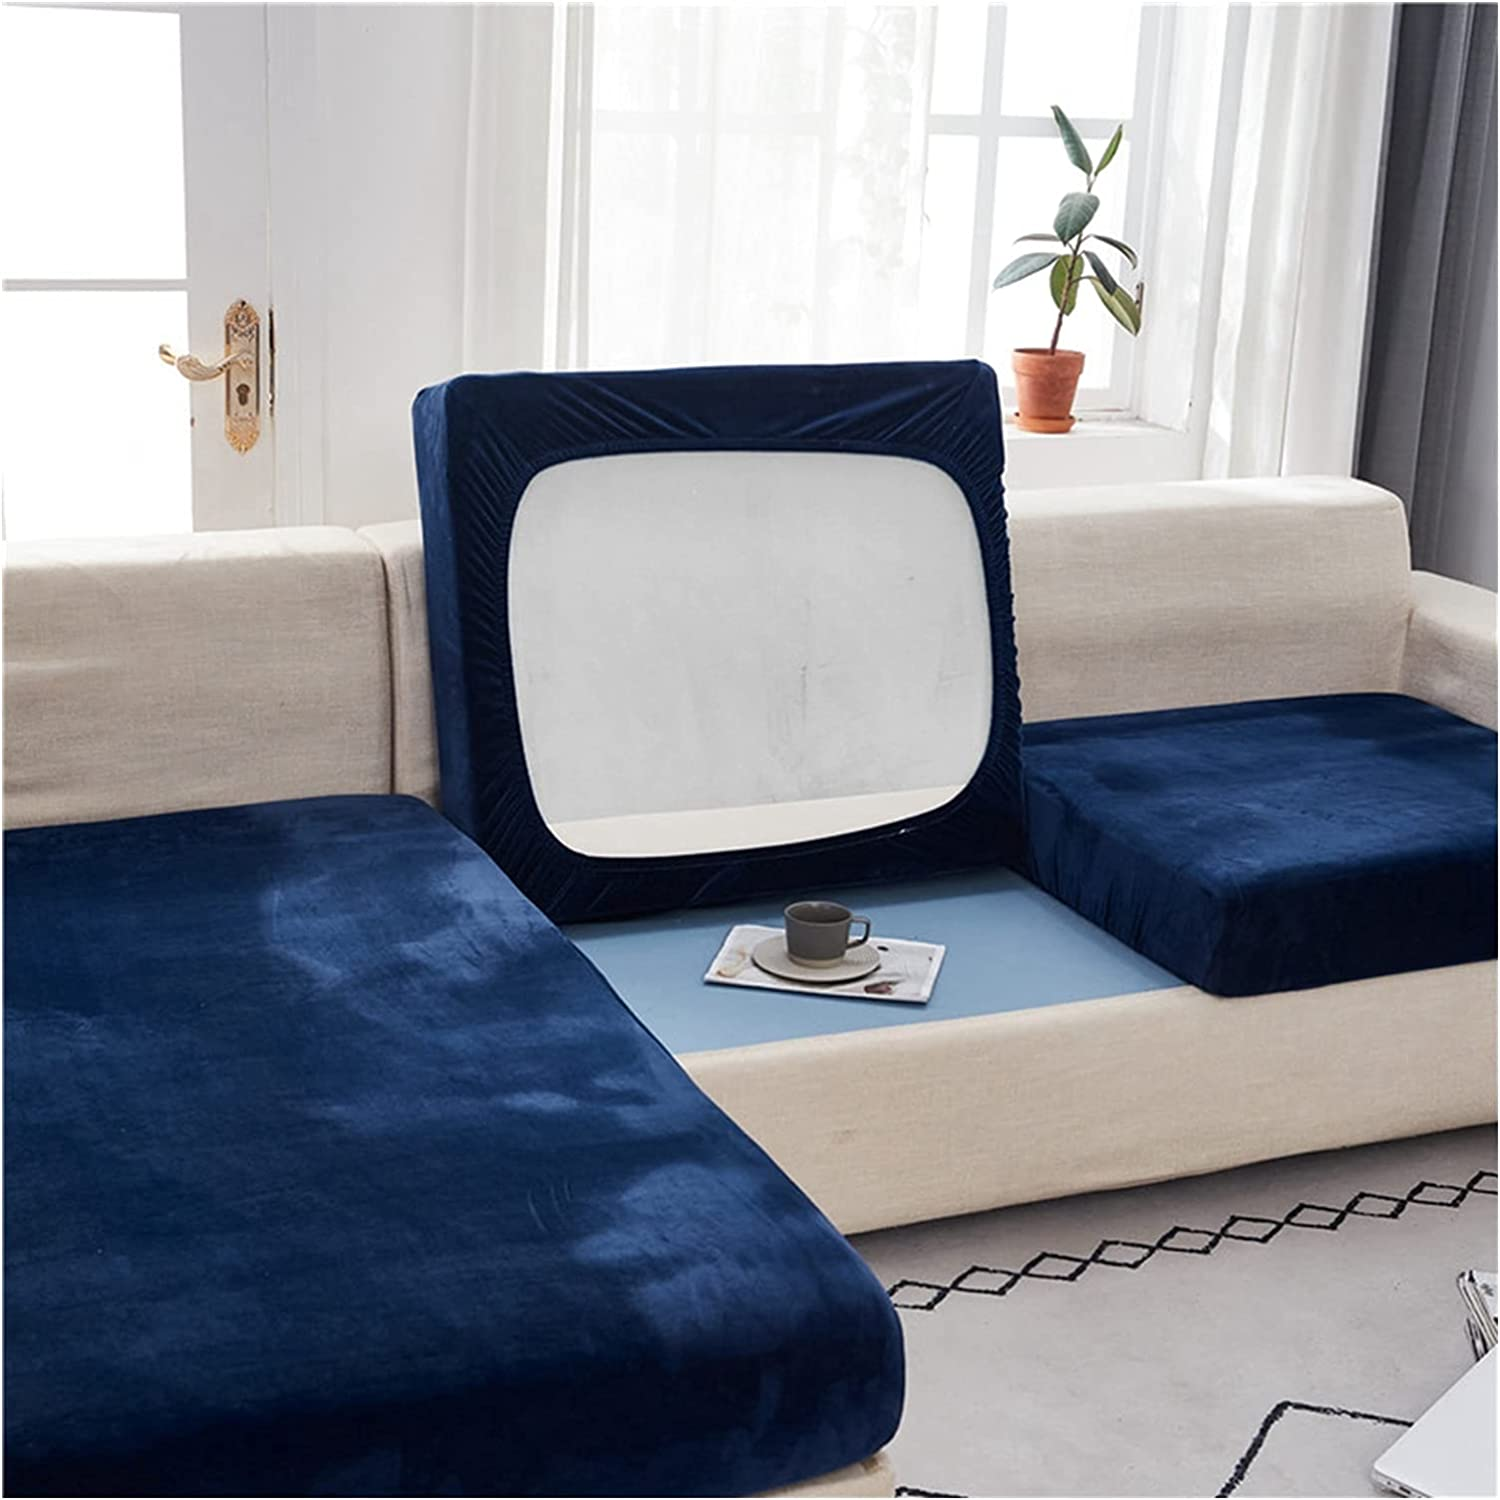 DGFDS Sofa Cover Plush Soft Elastic Seat Couch NEW before Year-end annual account selling ☆